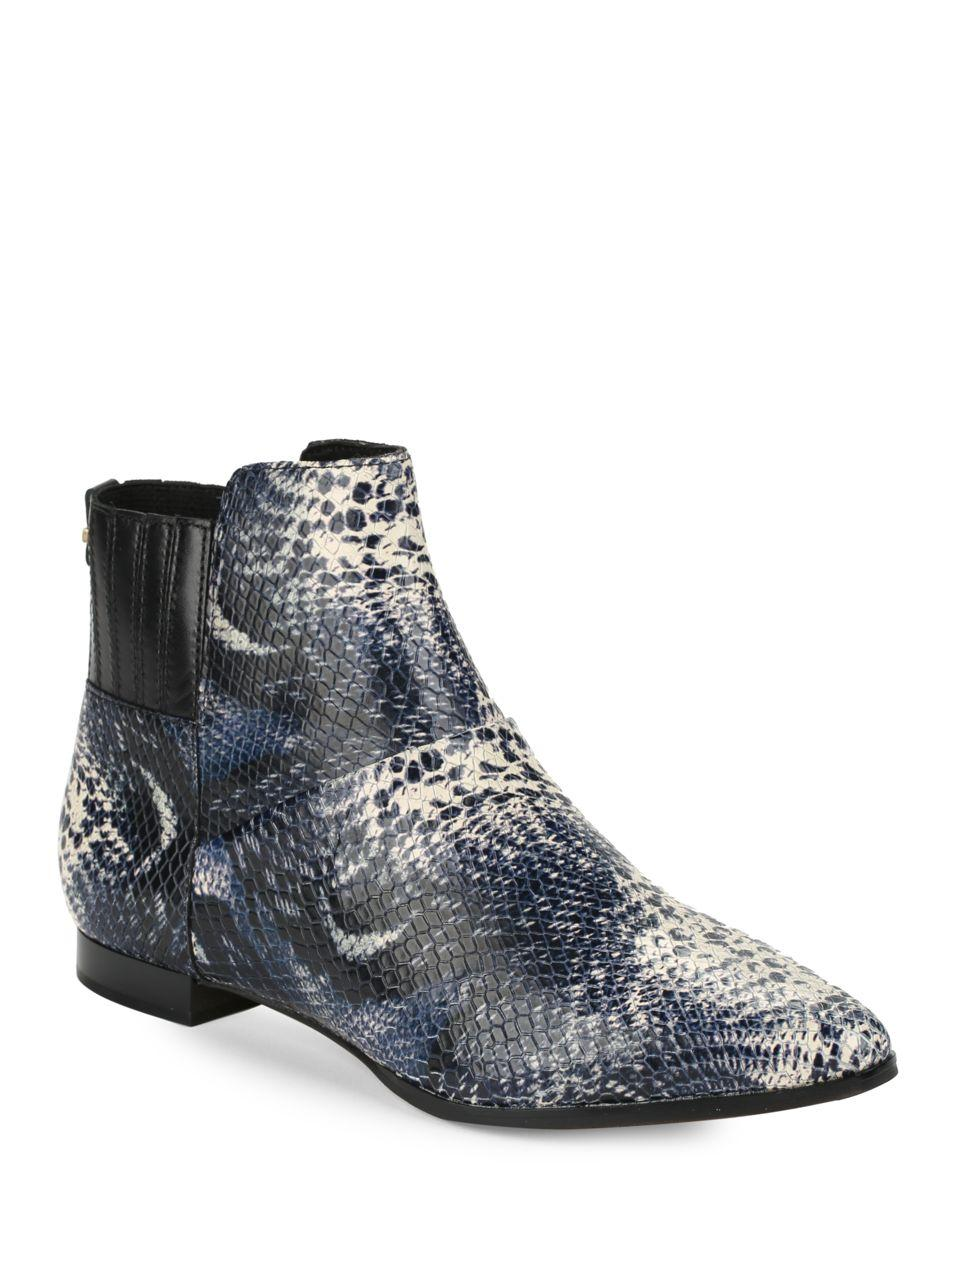 calvin klein eunice snakeskin embossed leather ankle boots